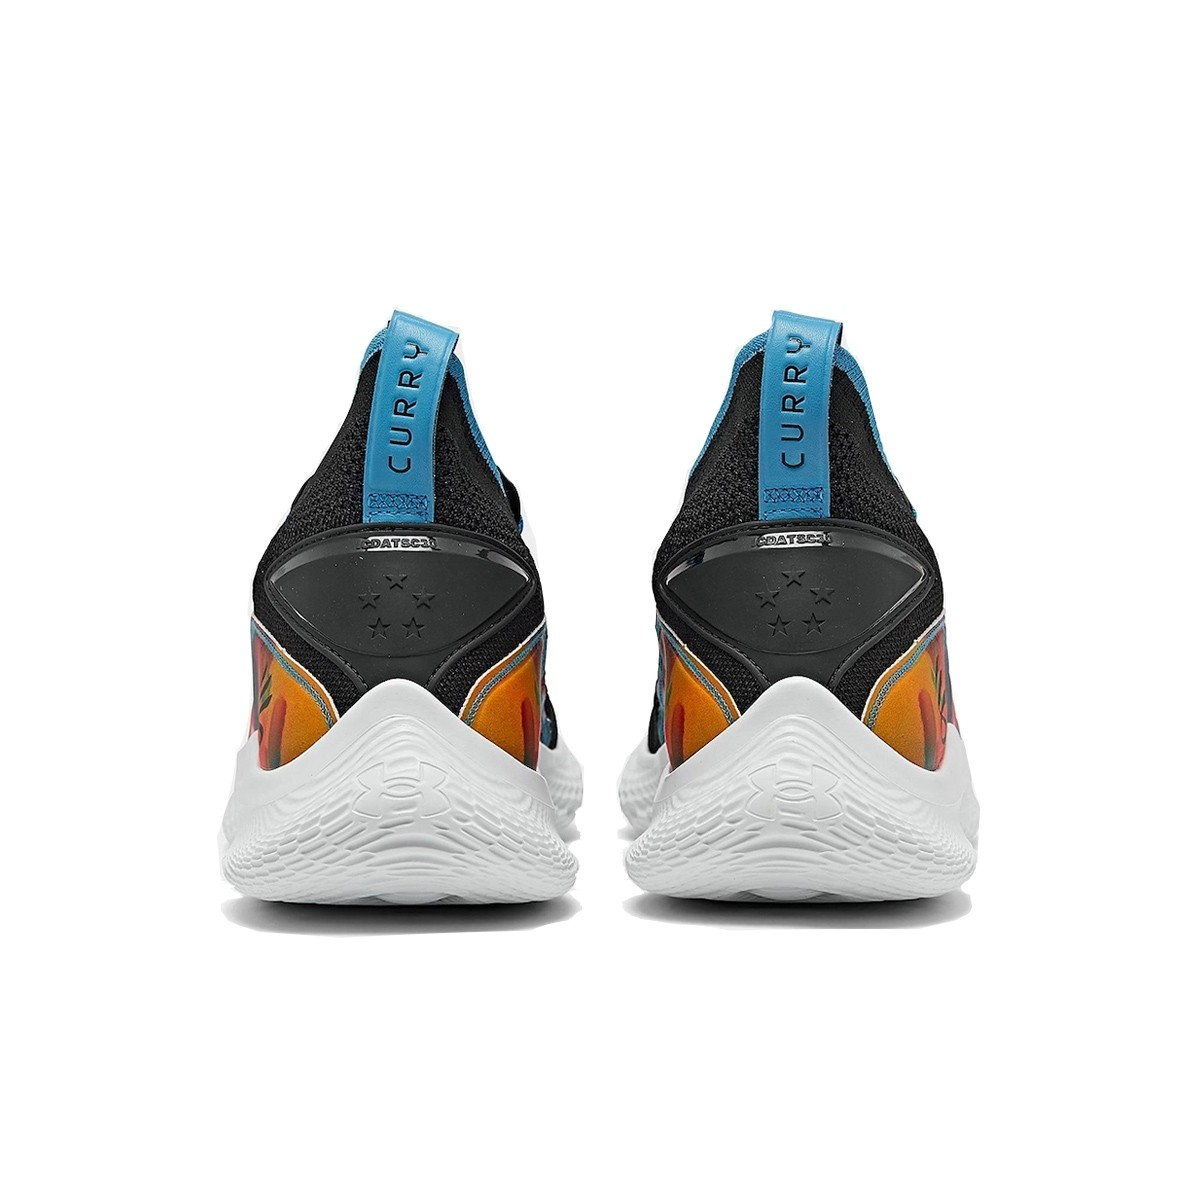 Under Armour Curry 8 Jr 'Feel Good'-3024033-001